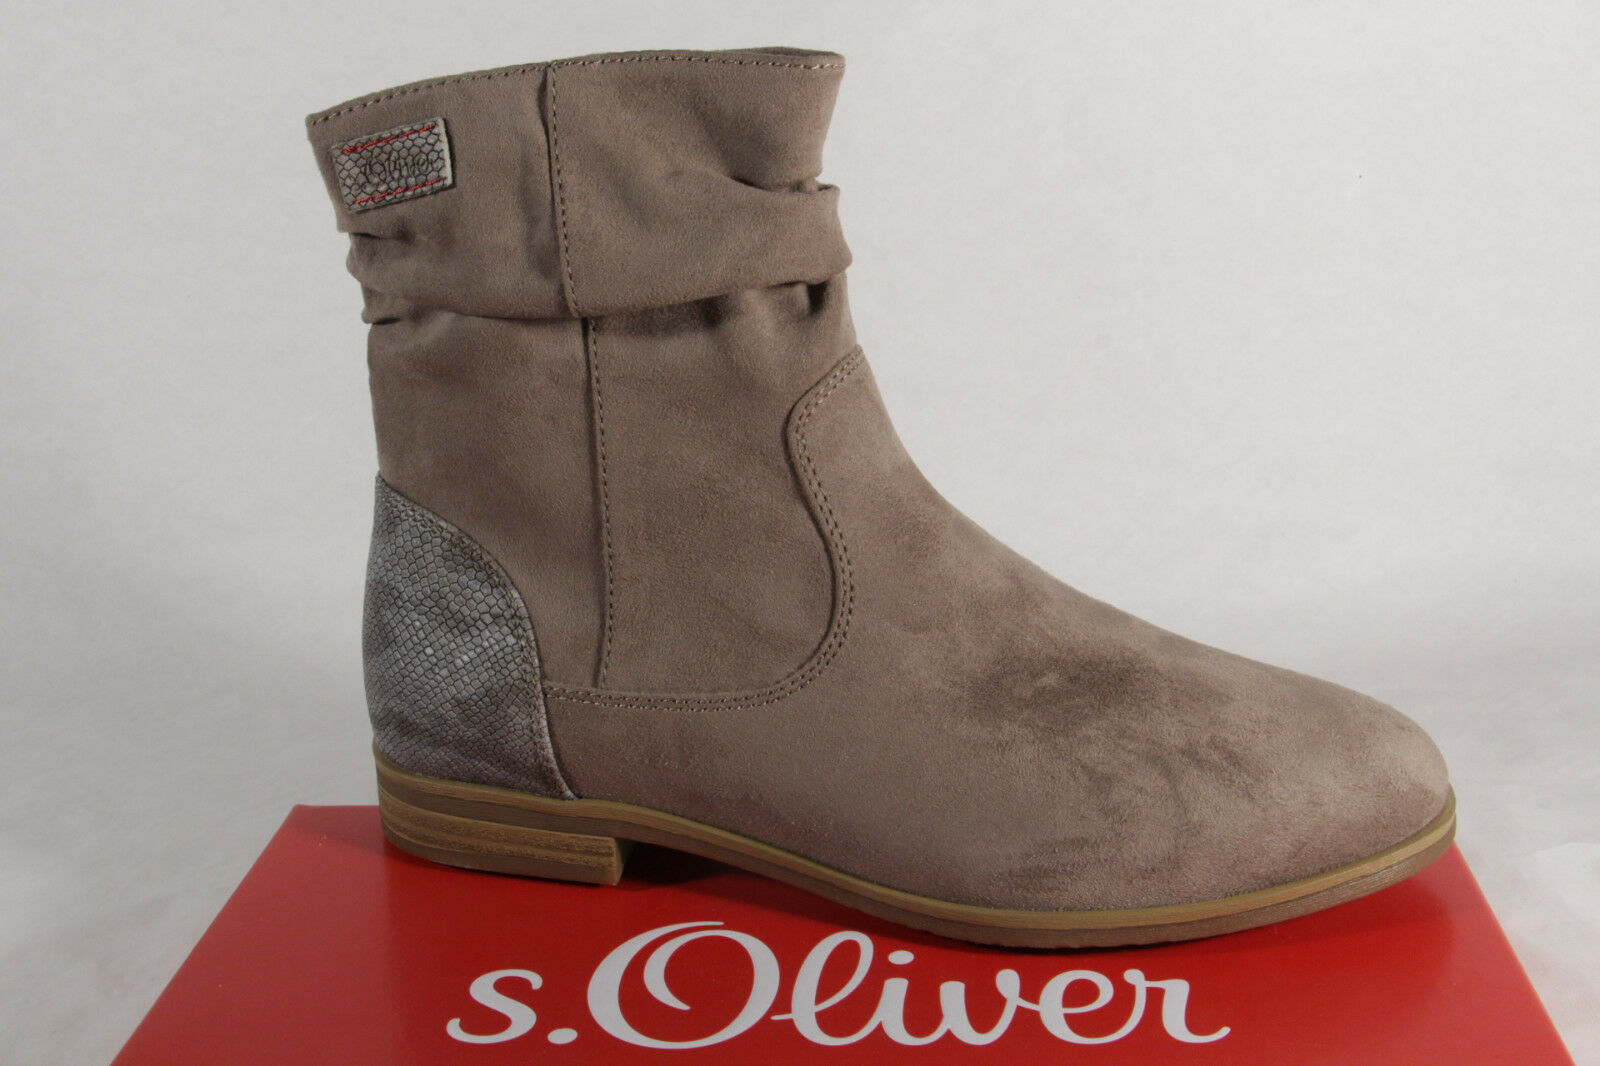 S.Oliver Women's Boots, Ankle Boots, Boots Beige 25357 NEW